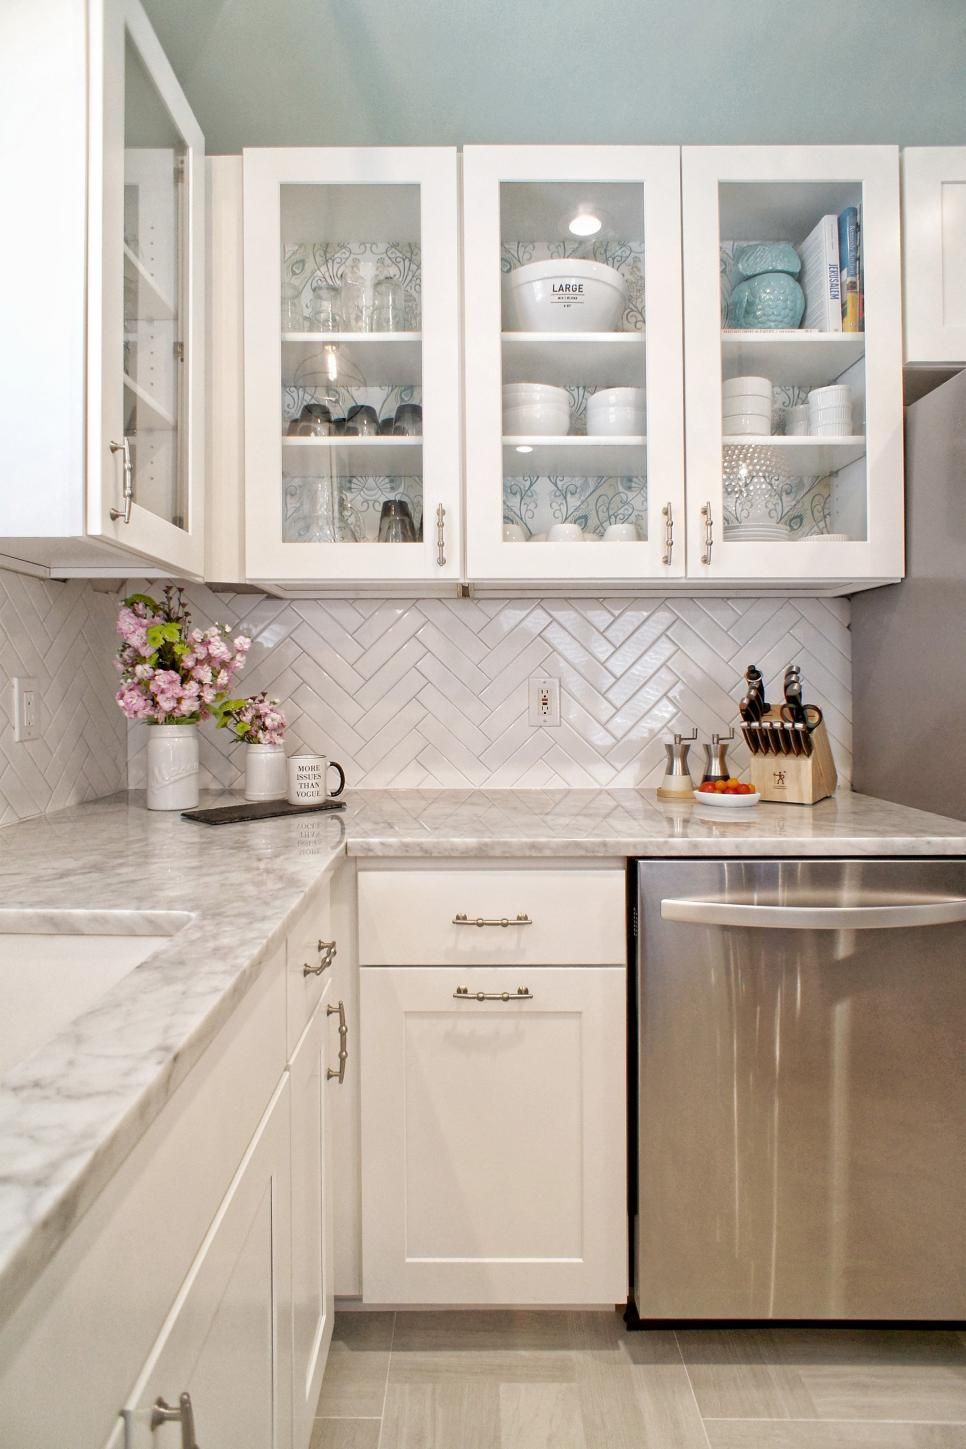 Kitchen Backsplash Ideas With White Cabinets.Our 25 Most Pinned Photos Of 2016 Live Kitchen Design